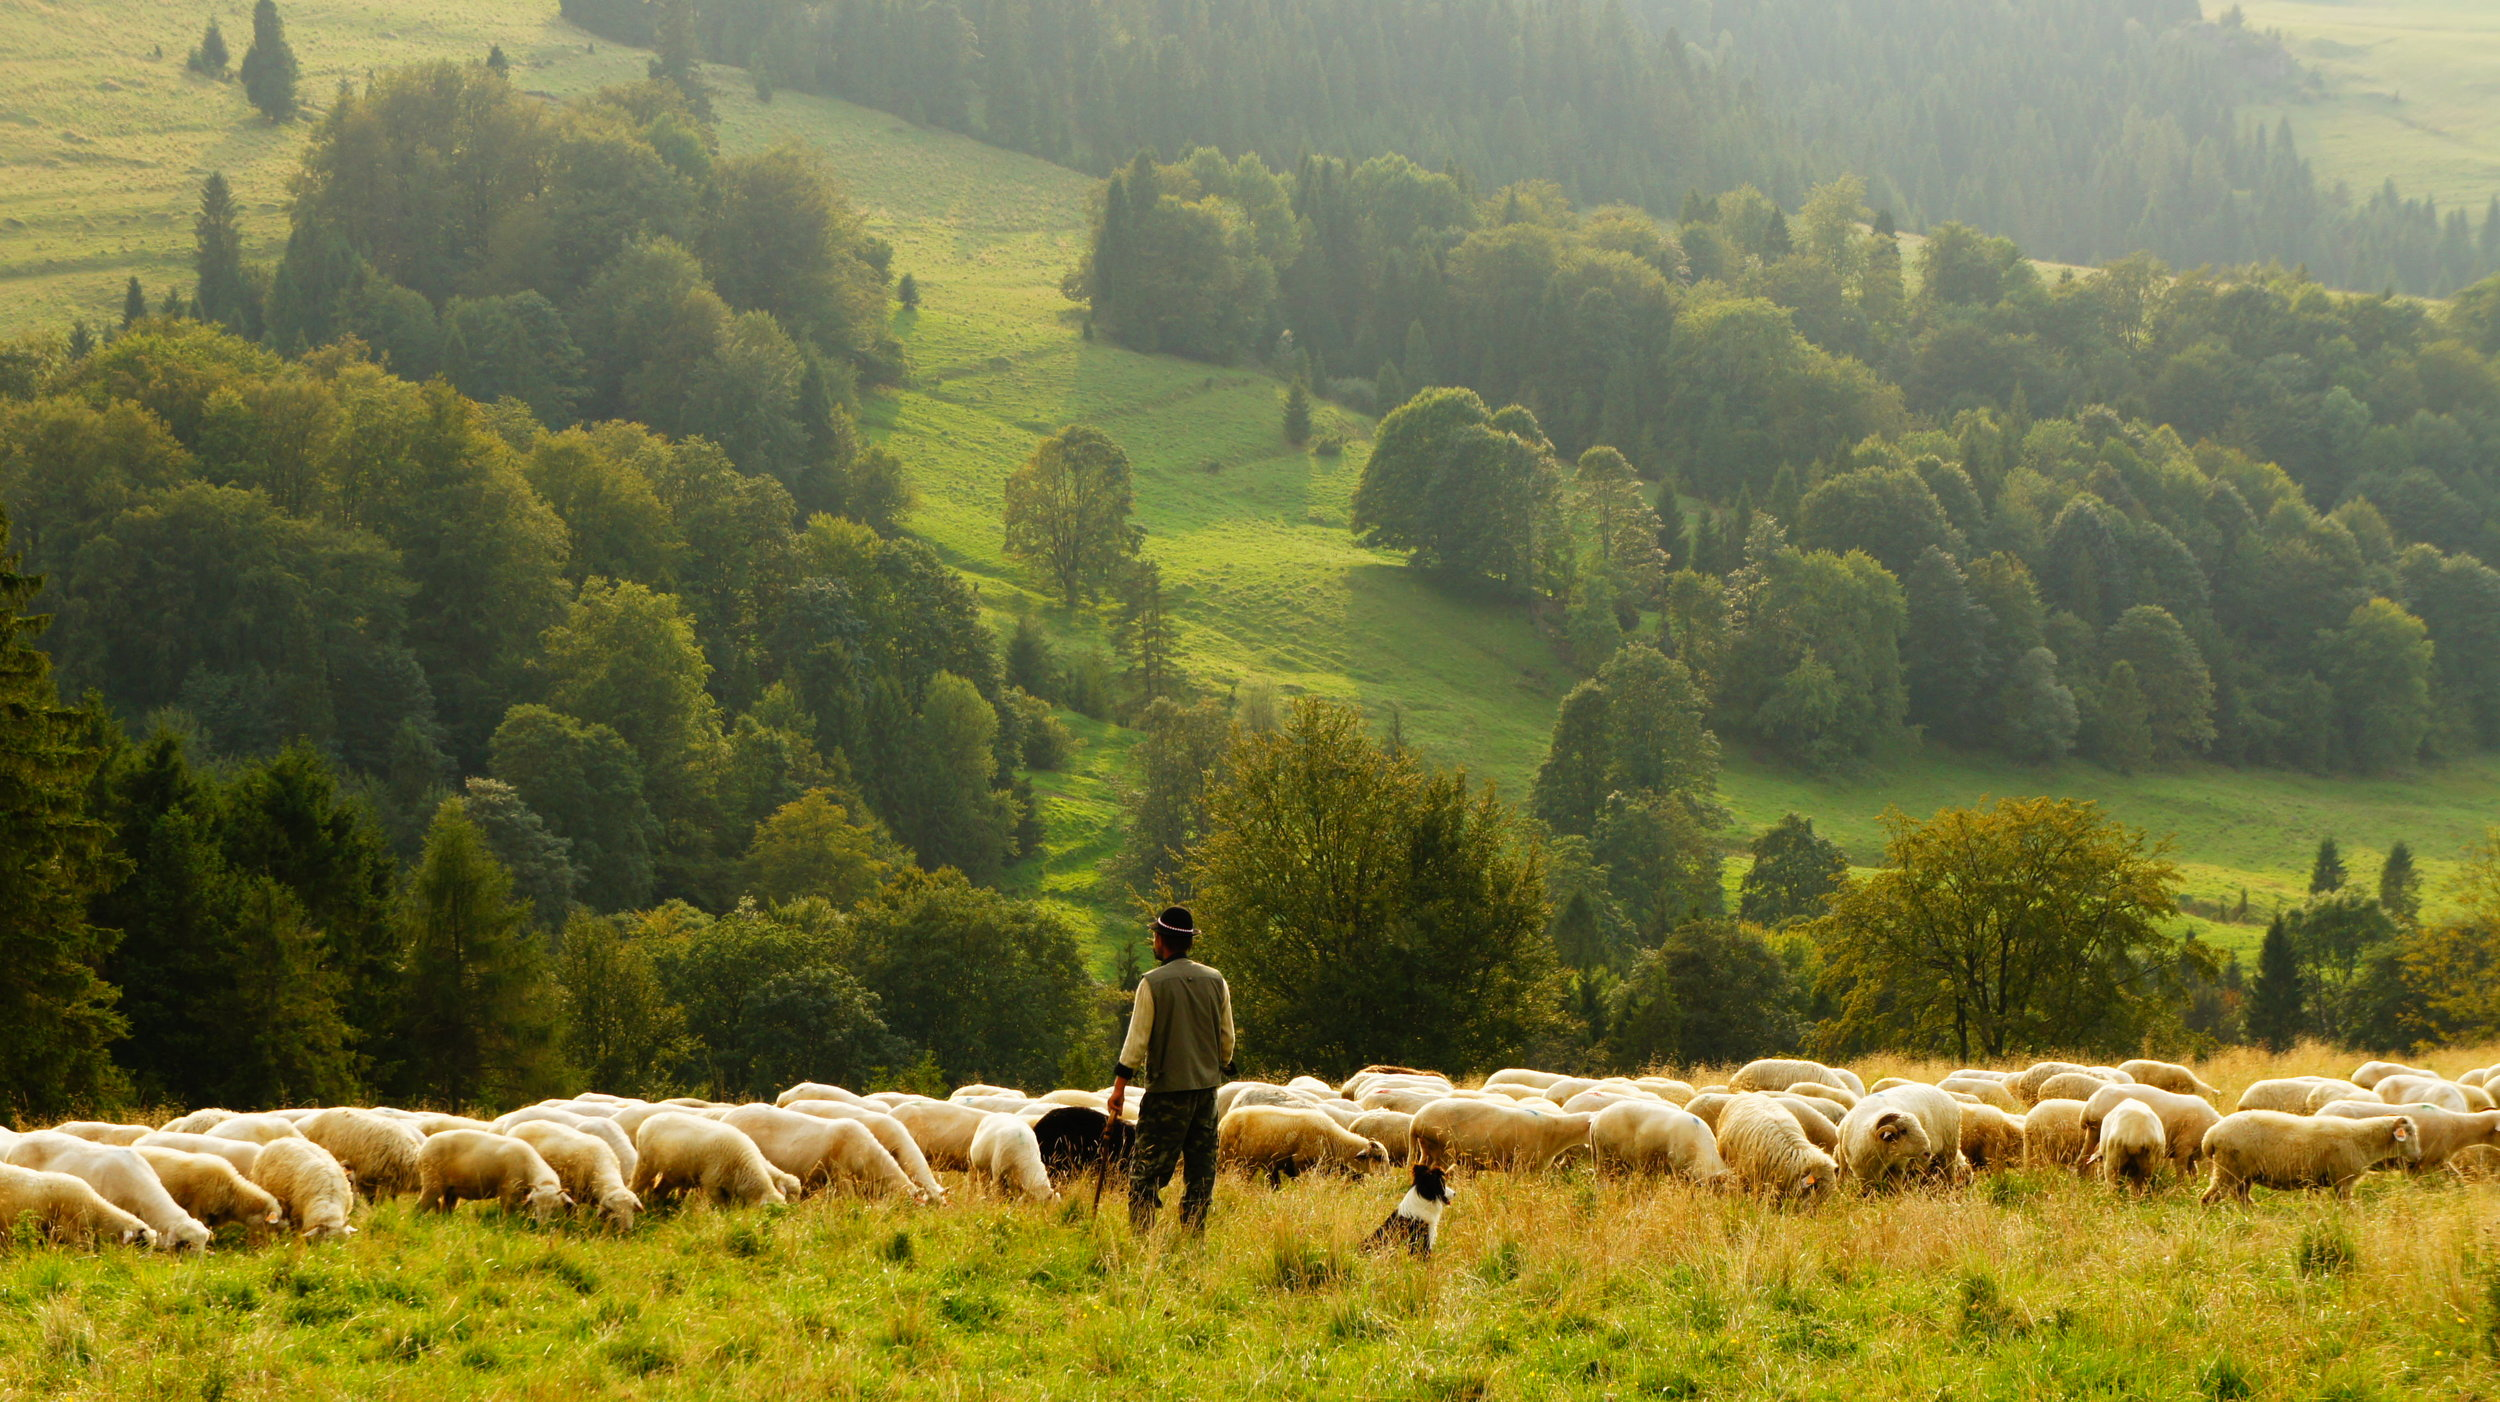 The All Sufficient Shepherd - The City Church 3rd August 2014